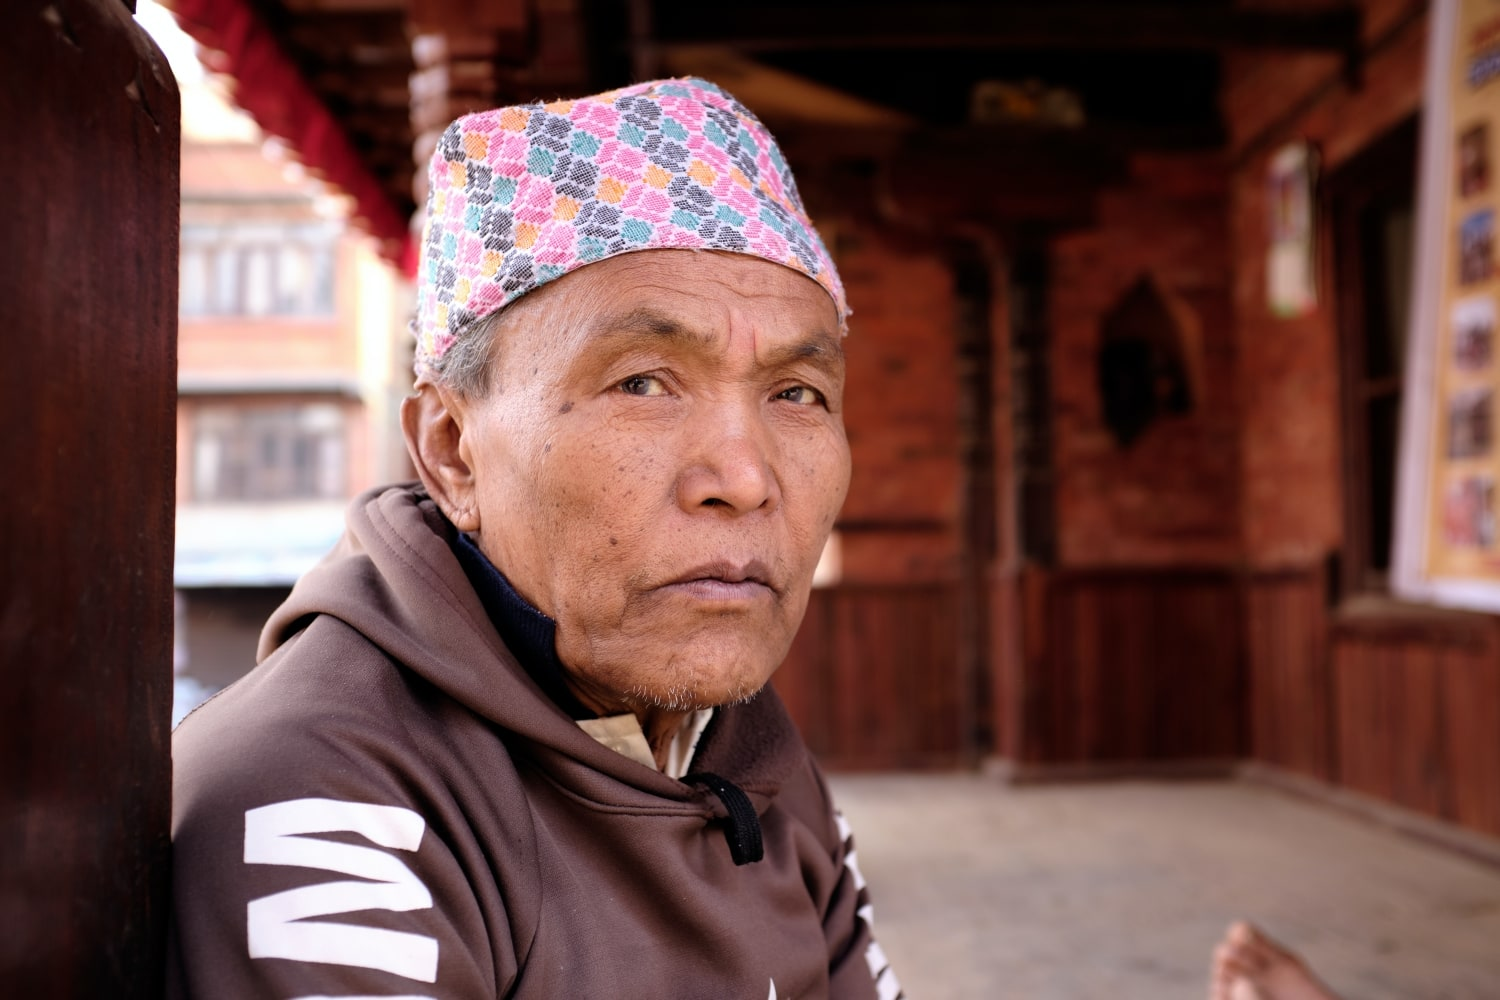 A man wearing Dhaka topi in Bhaktapur